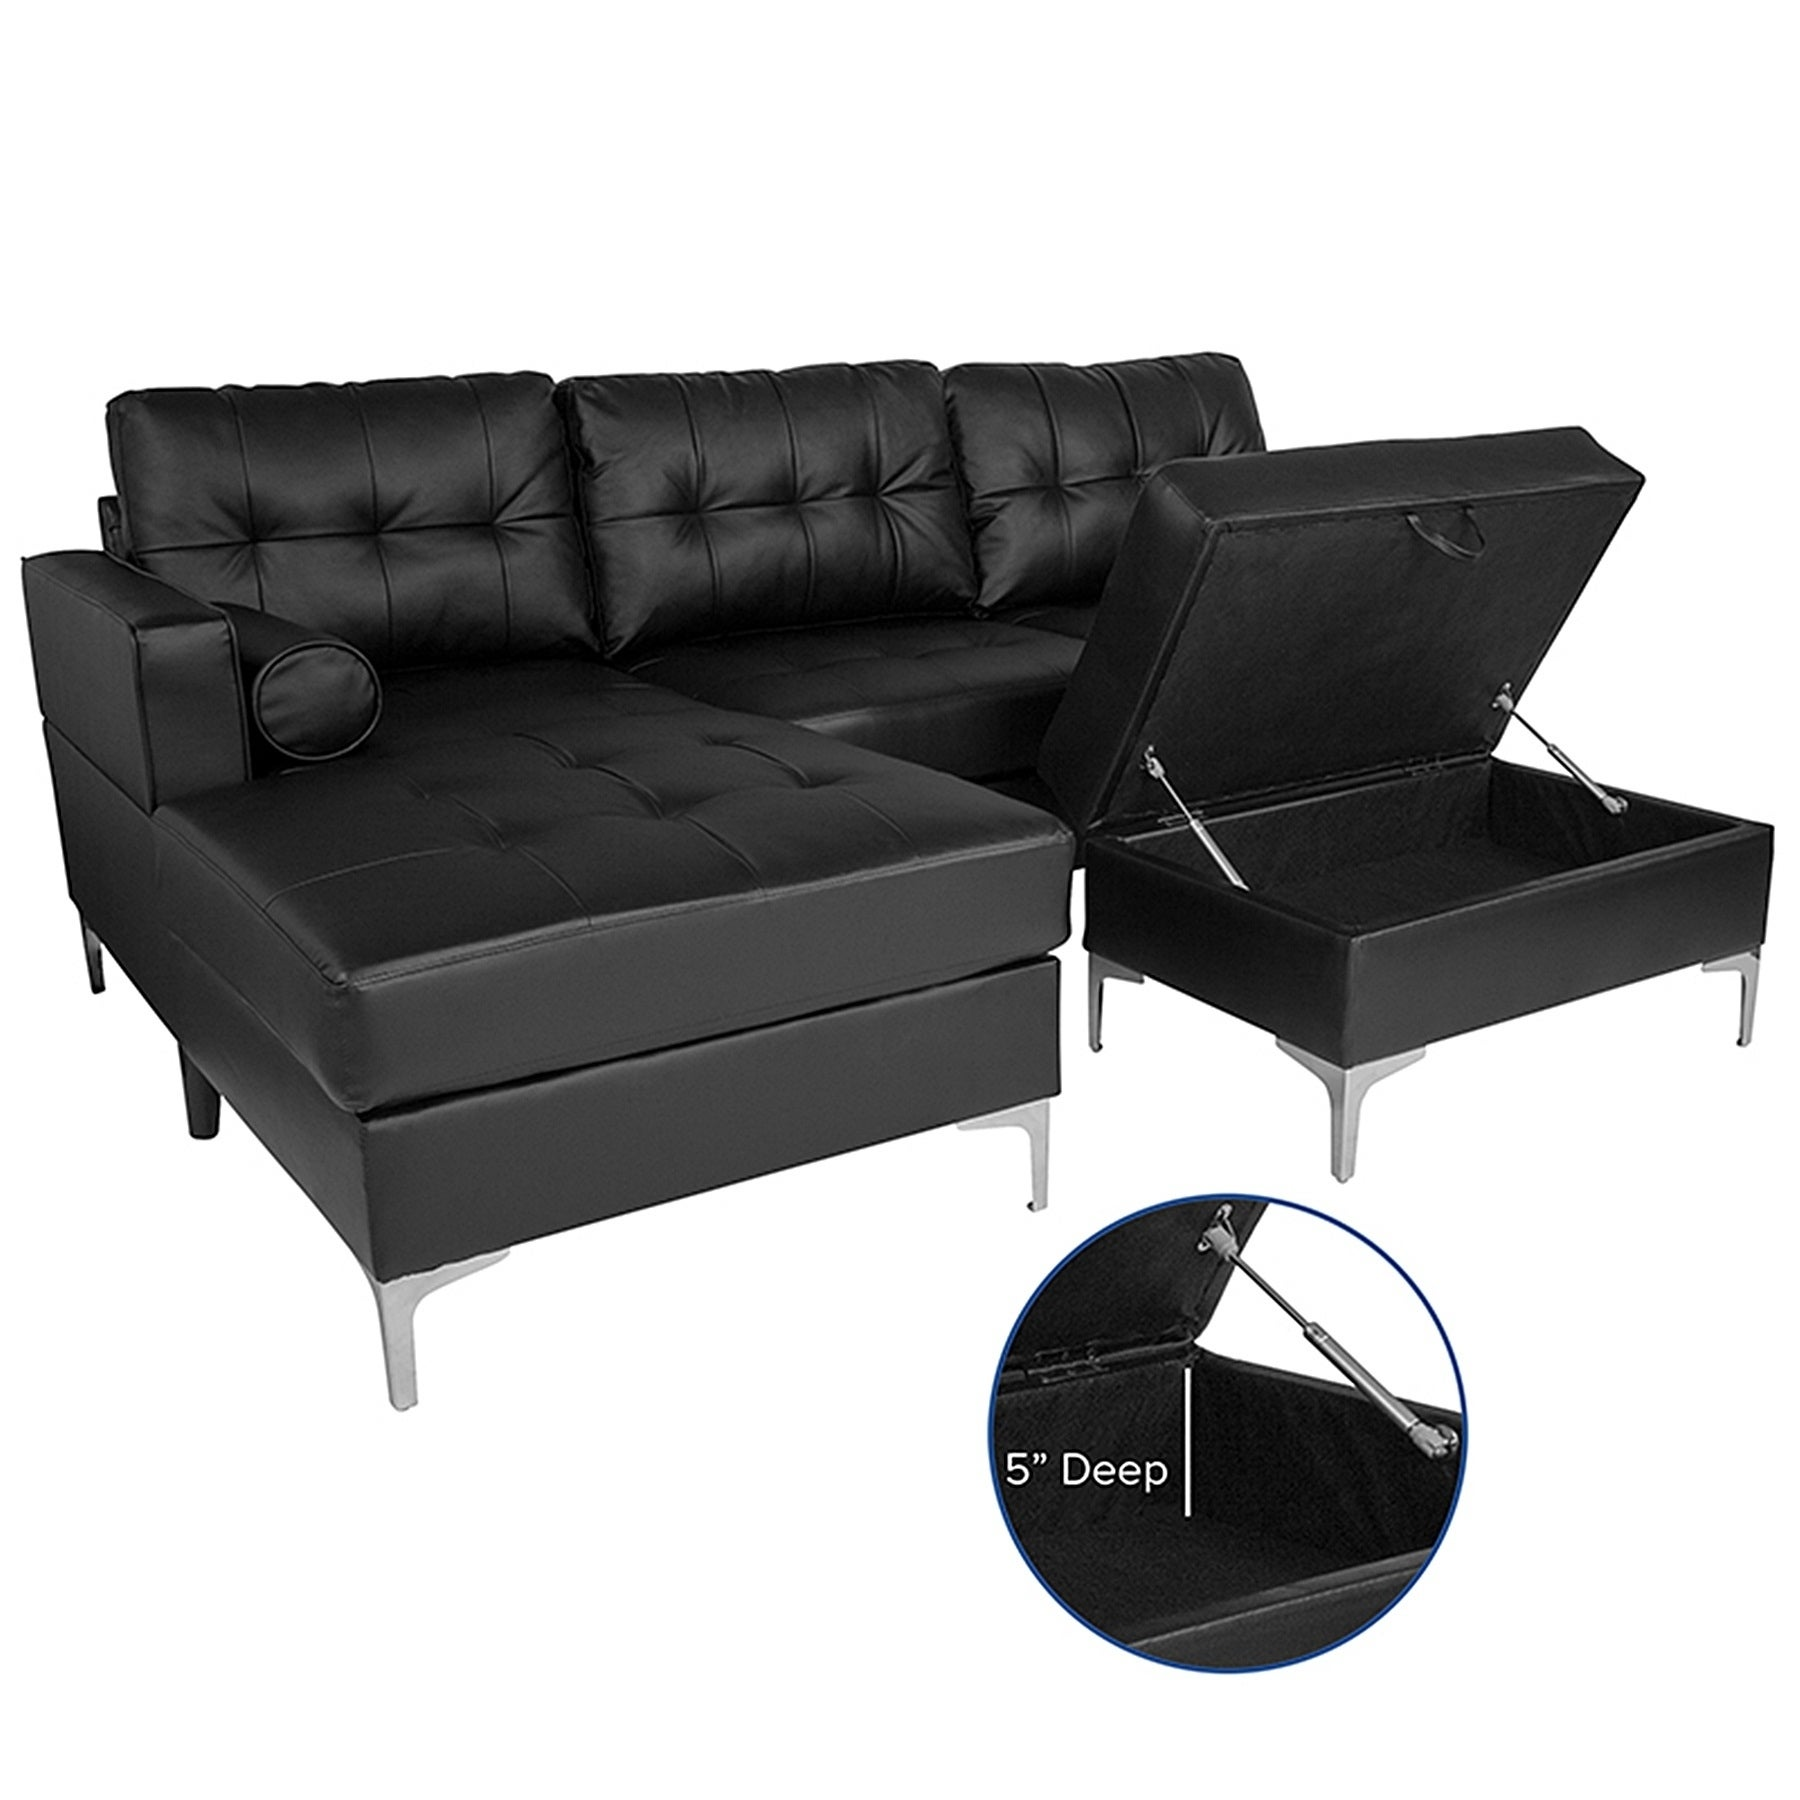 Shop Bellmore 3-Piece Black Leather Sectional Sofa with Left Facing ...